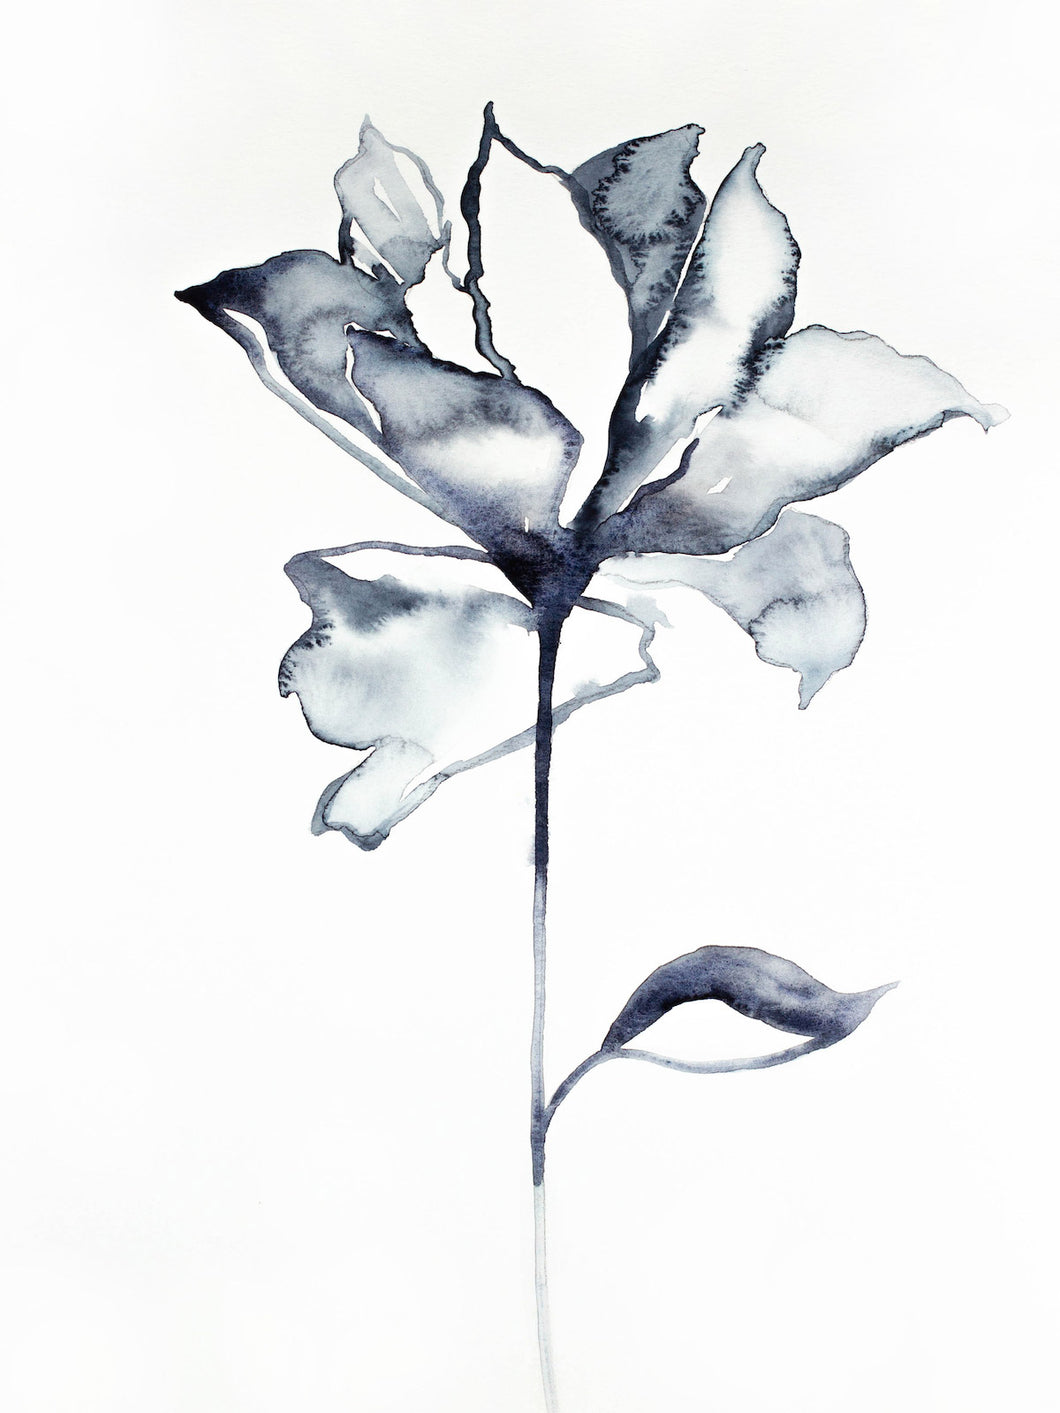 "9"" x 12"" original watercolor botanical floral rose painting in an expressive, impressionist, minimalist, modern style by contemporary fine artist Elizabeth Becker. Soft black, gray and white colors."